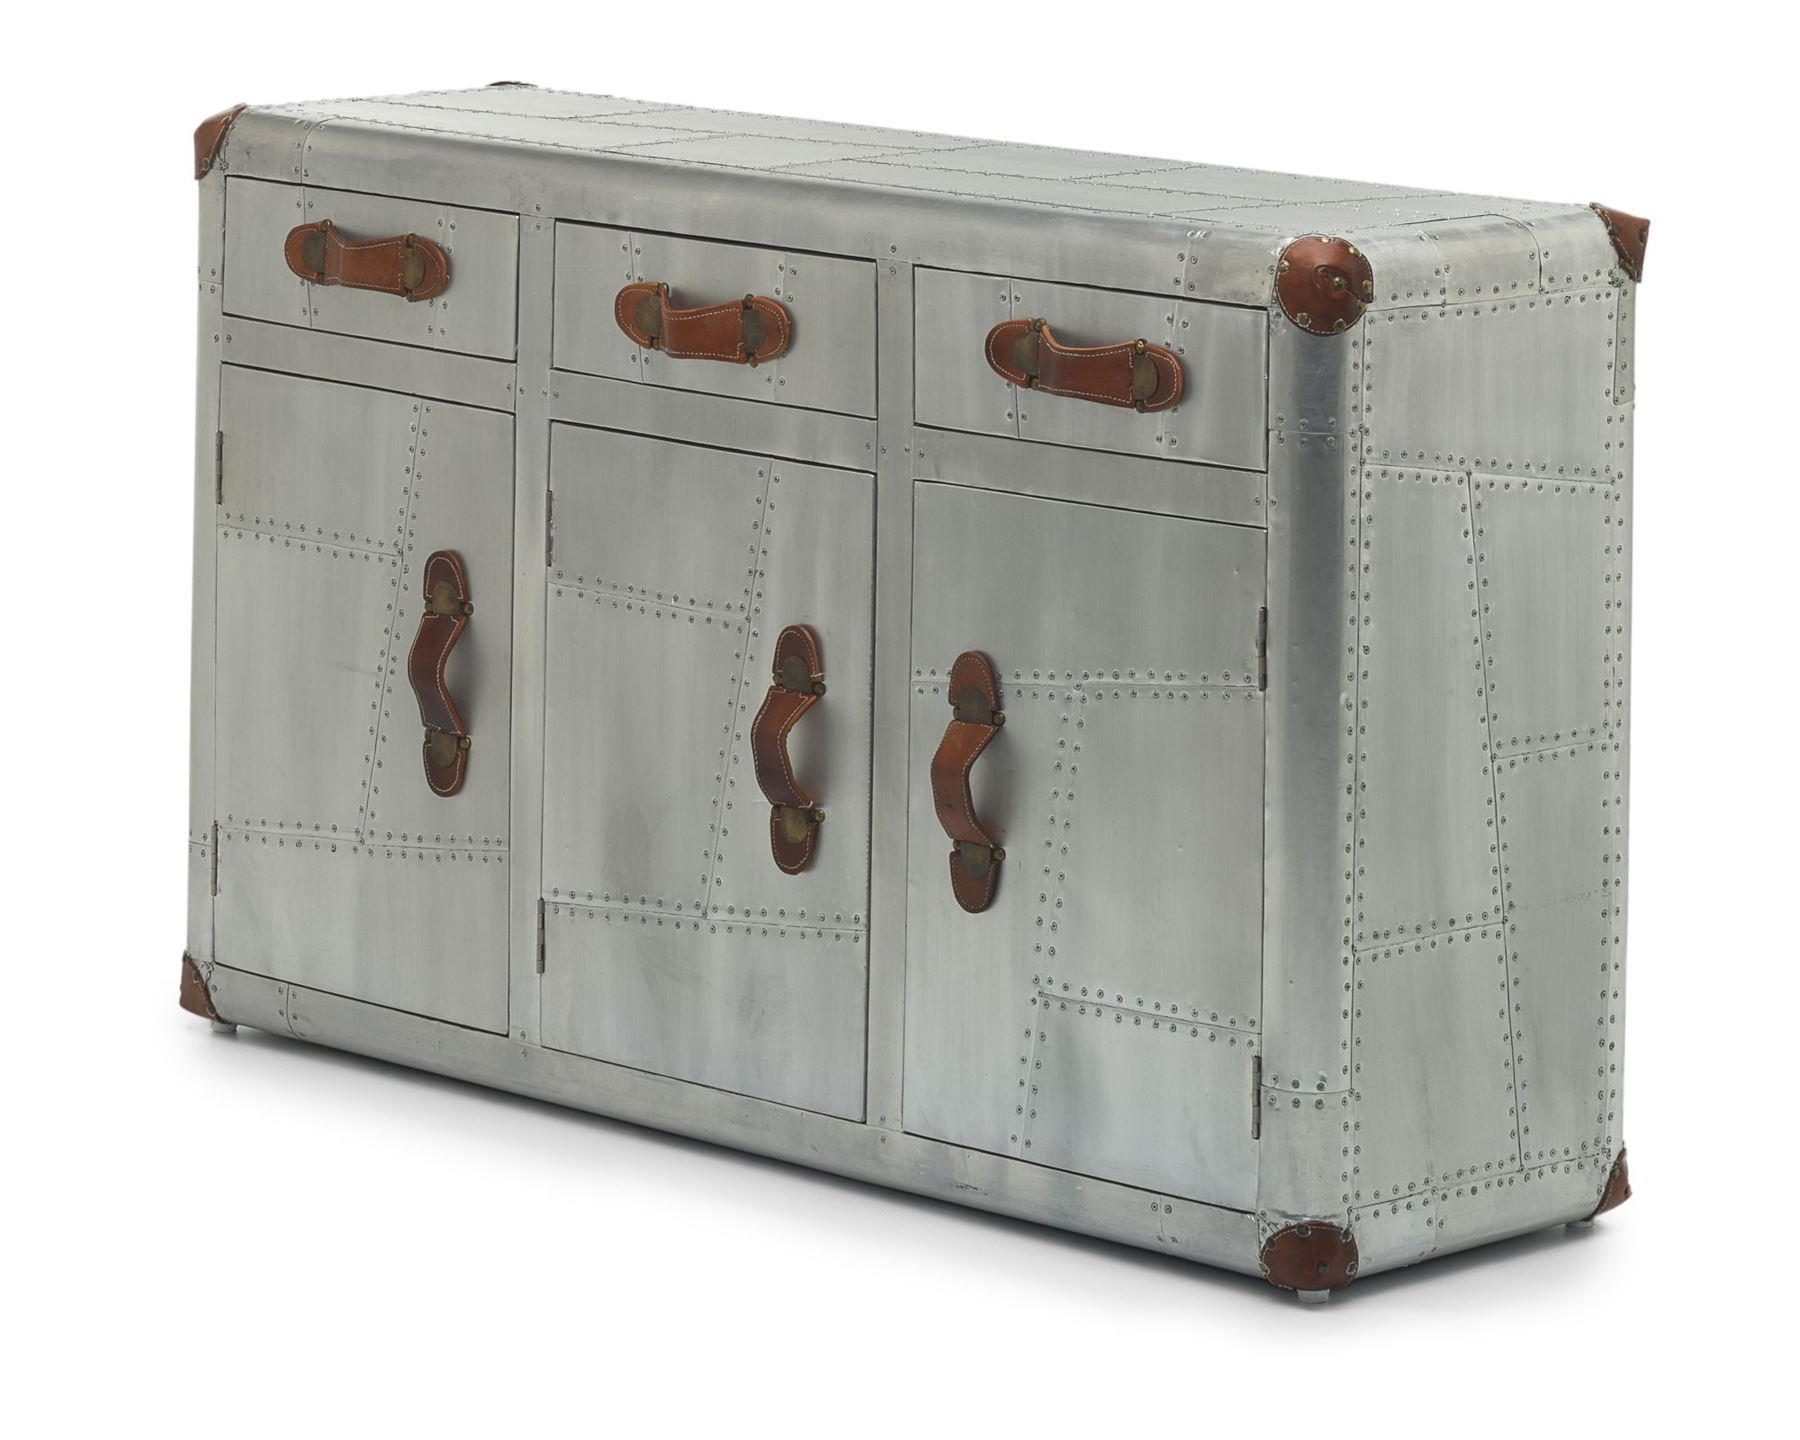 Widely Used Industrial 3 Drawer 3 Door Sideboards Intended For Aviator 3 Door Sideboard – Aviation Inspired Design – Industrial (View 20 of 20)